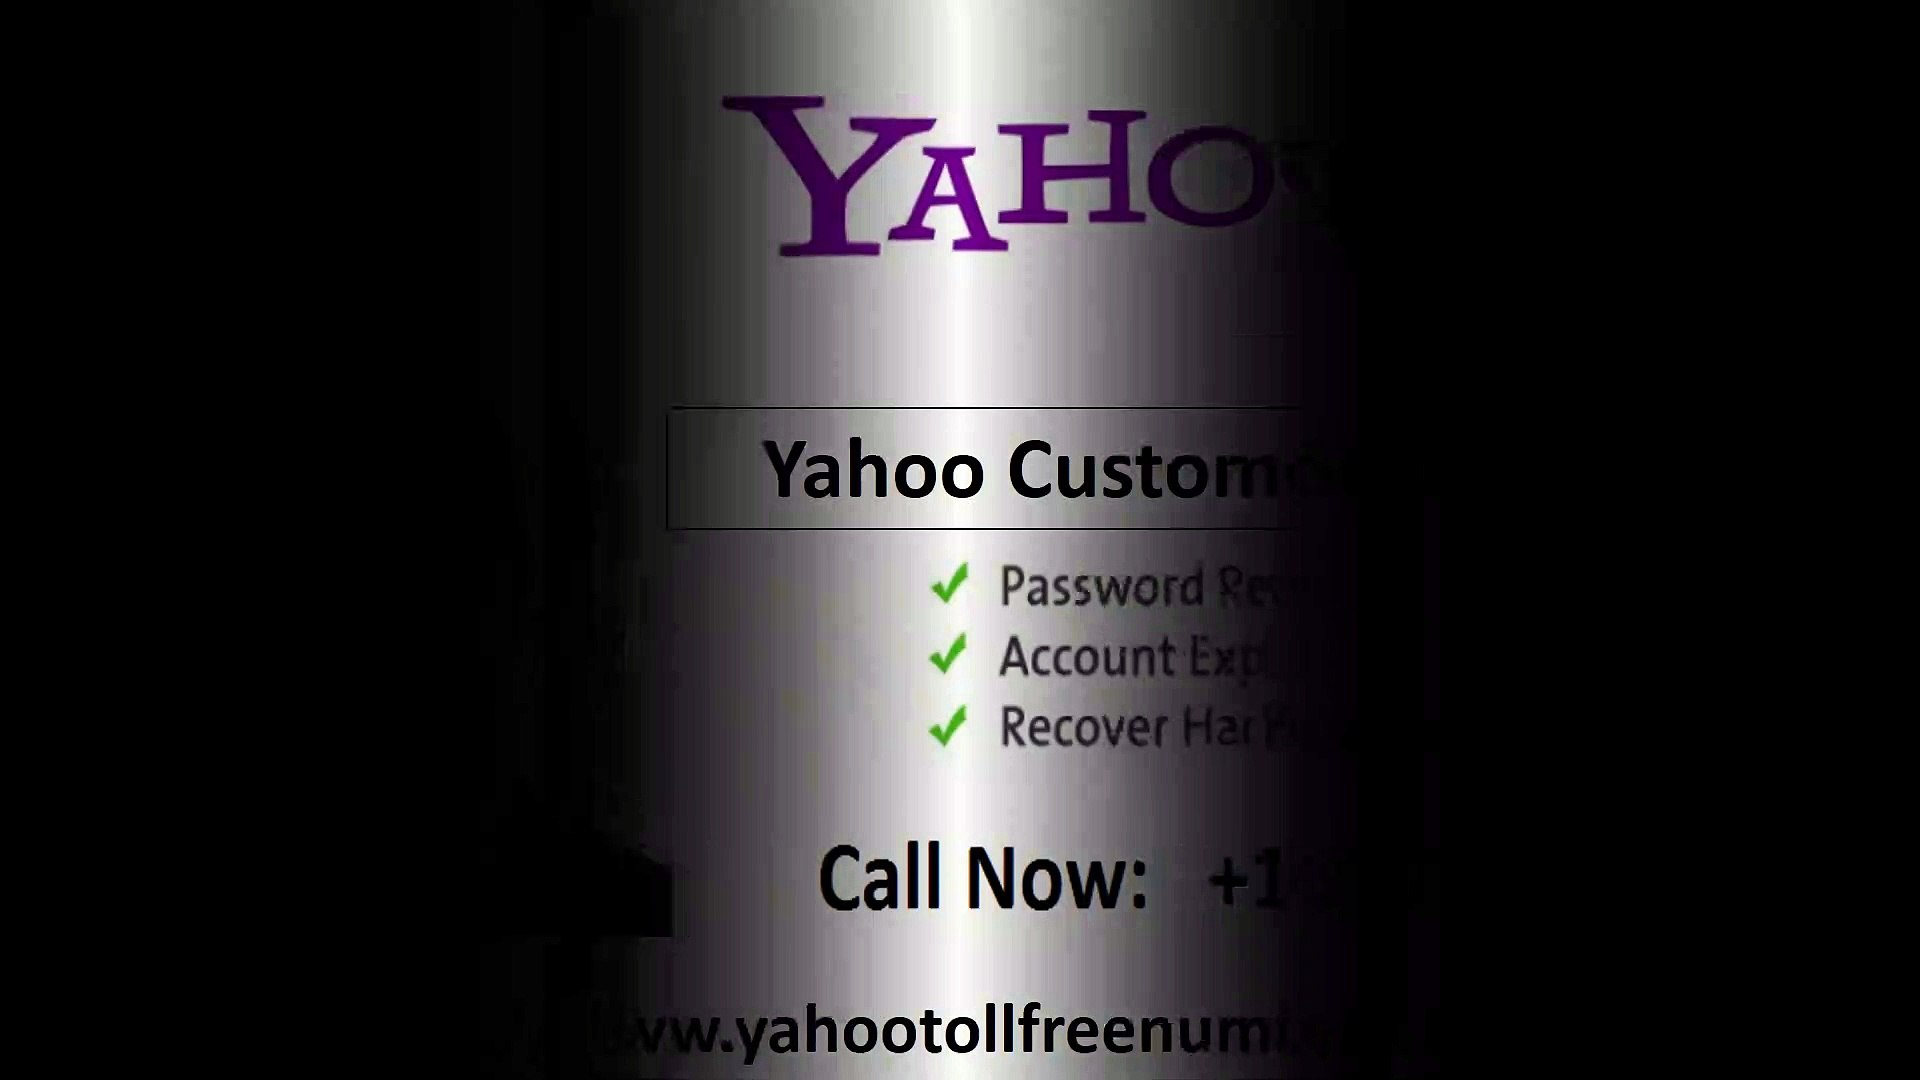 Yahoo Support Number and Yahoo Phone Number